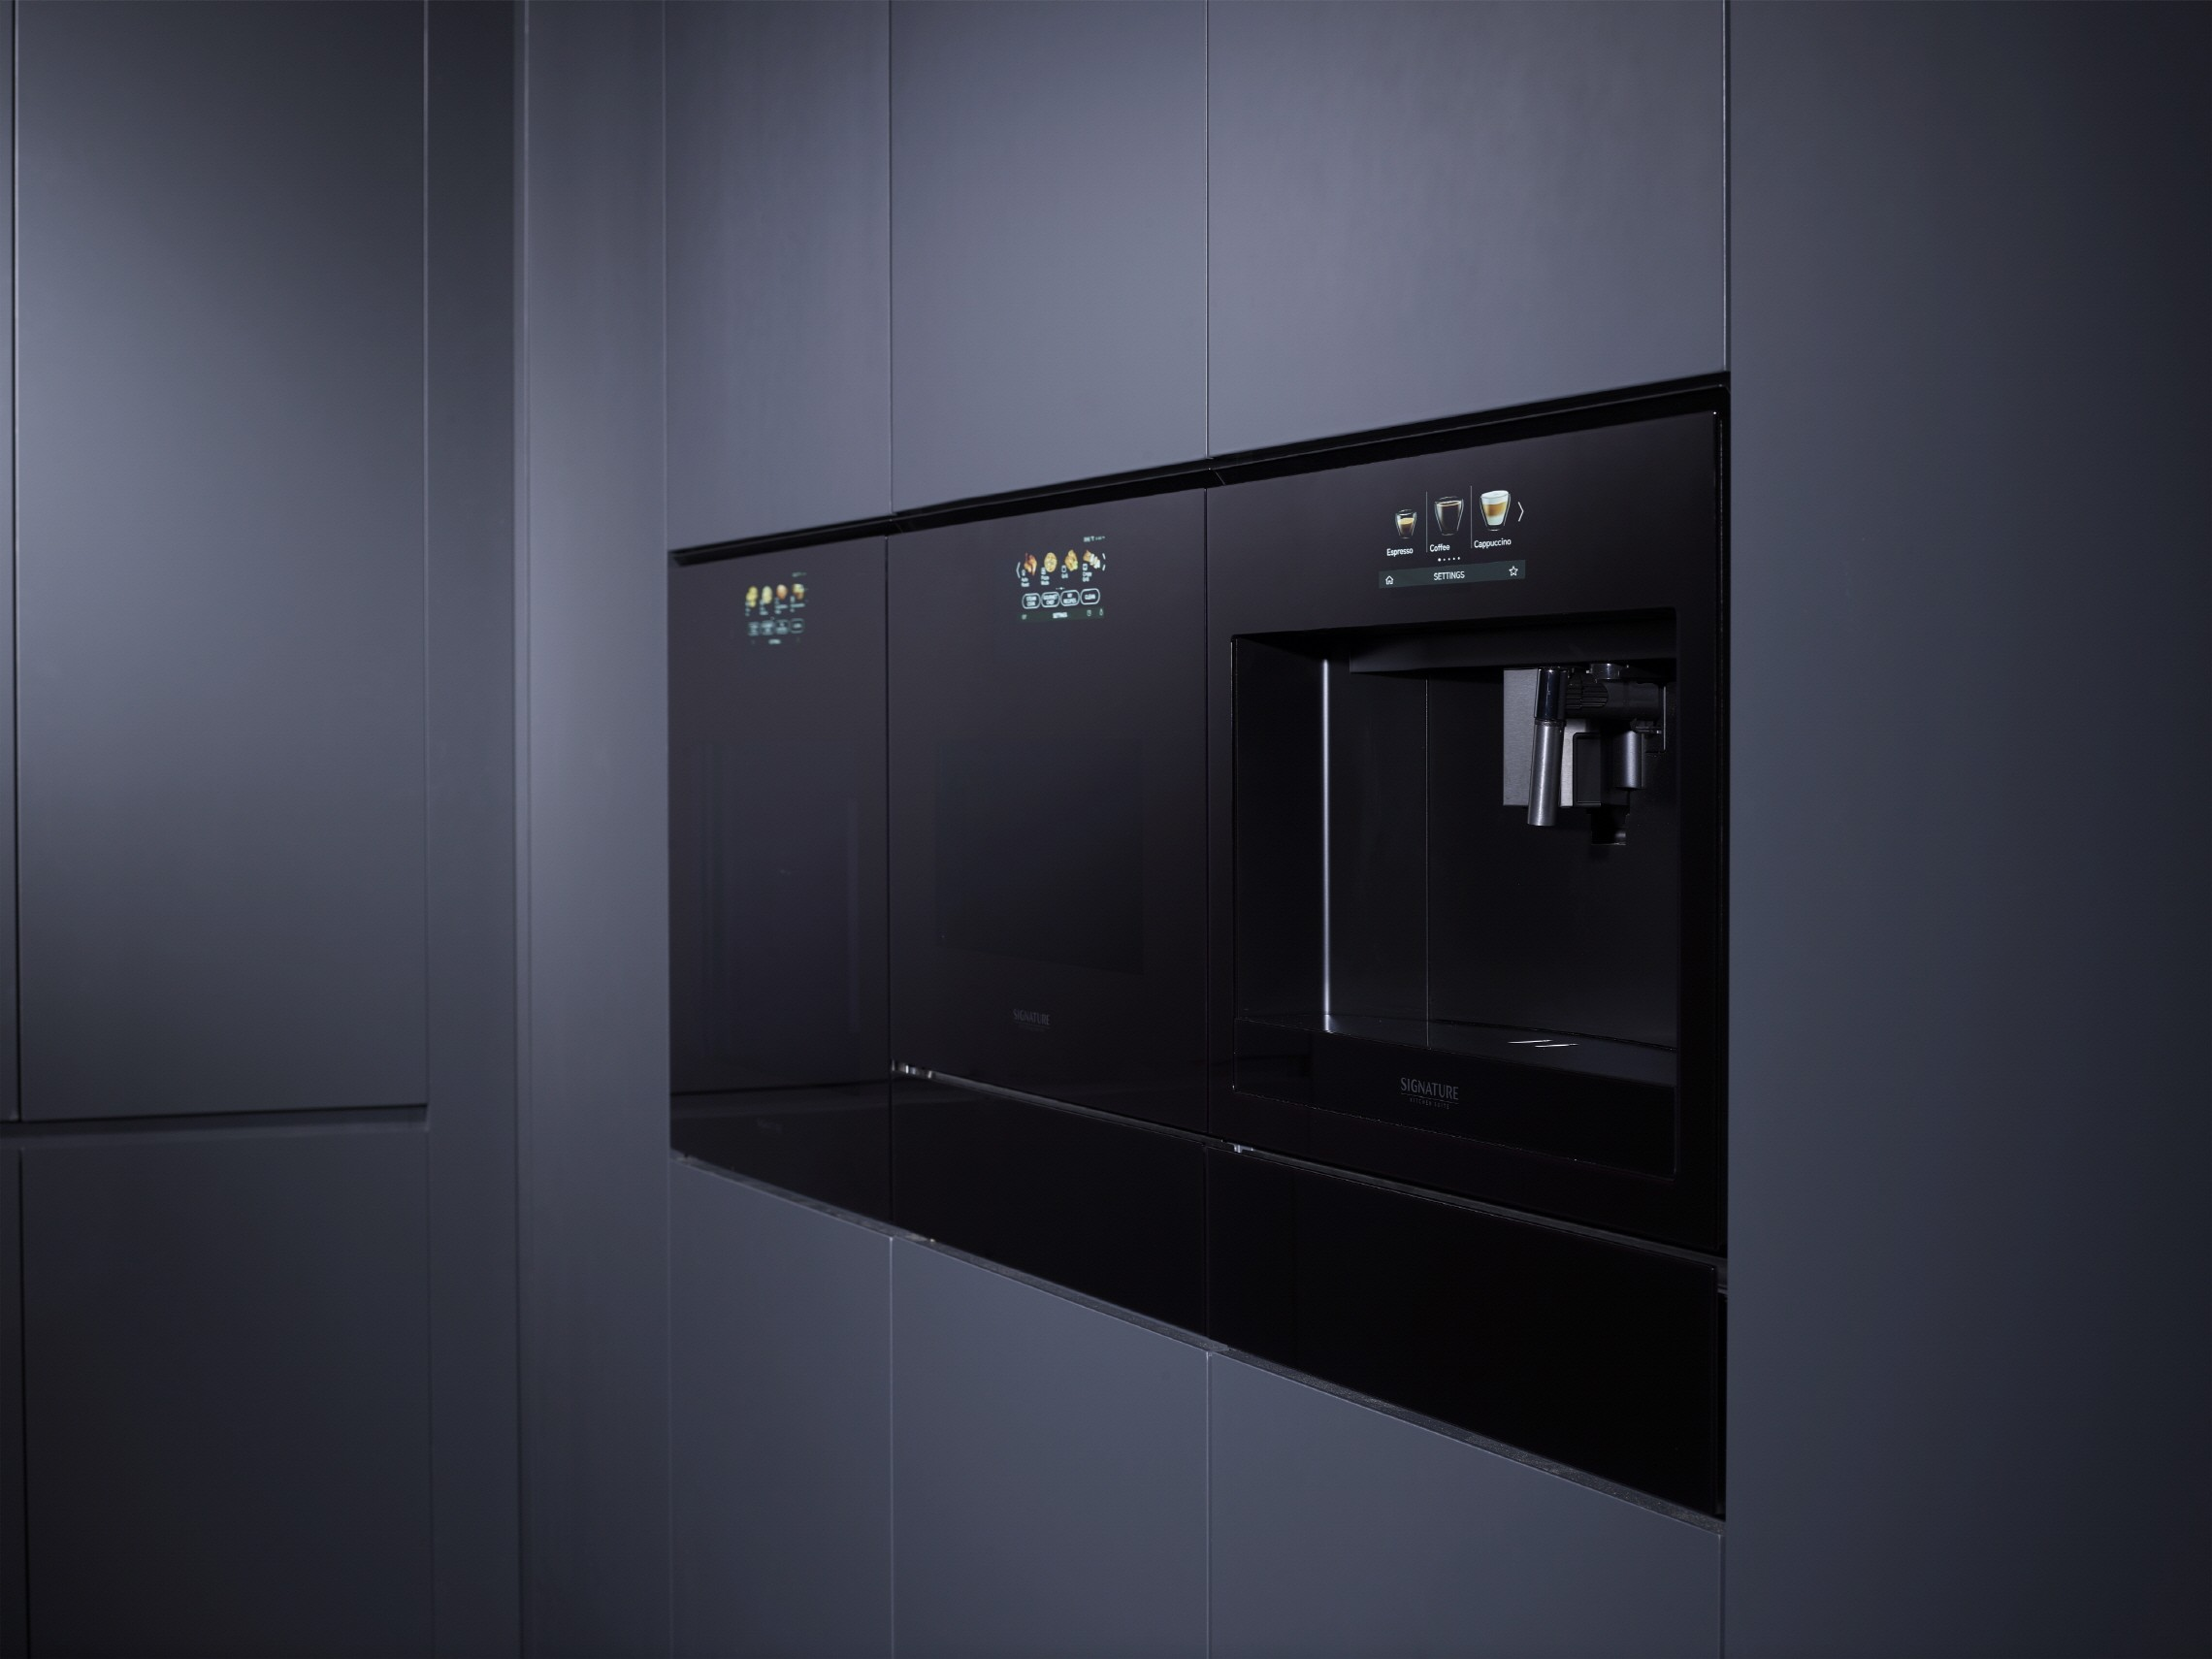 SIGNATURE KITCHEN SUITE wall oven